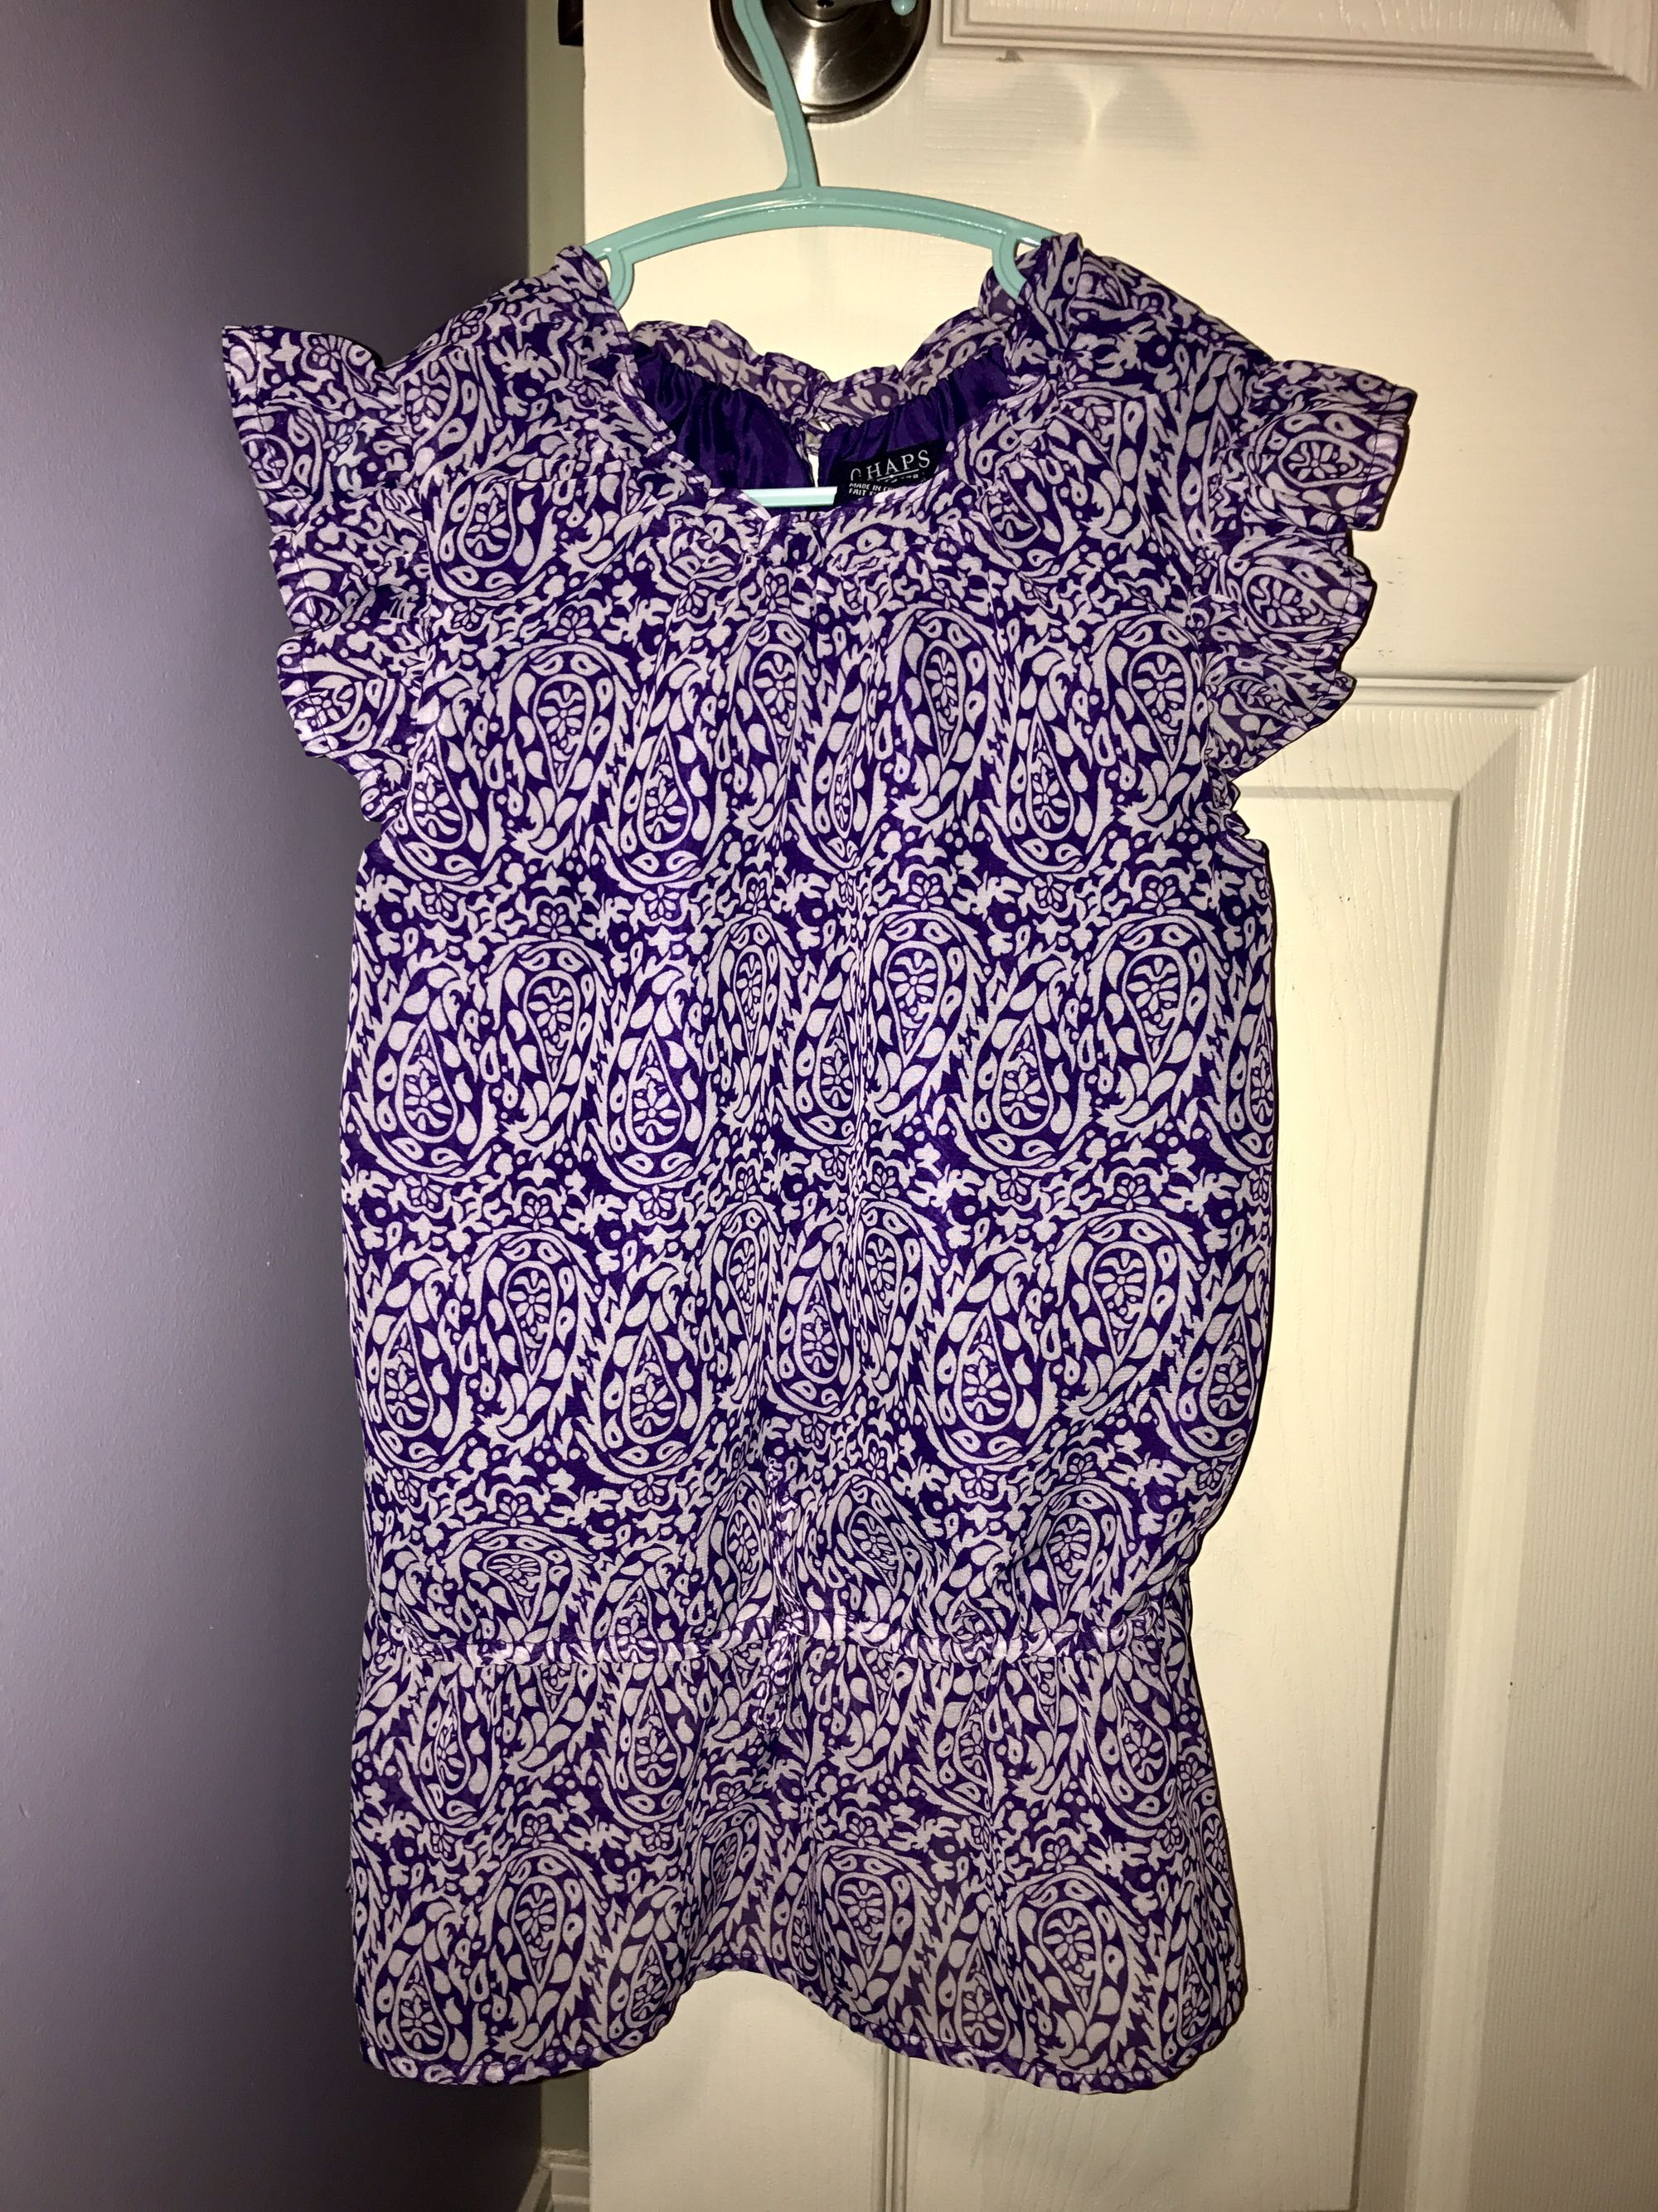 Gorgeous Tunic Top- Girls Size 7 - perfect condition -$7